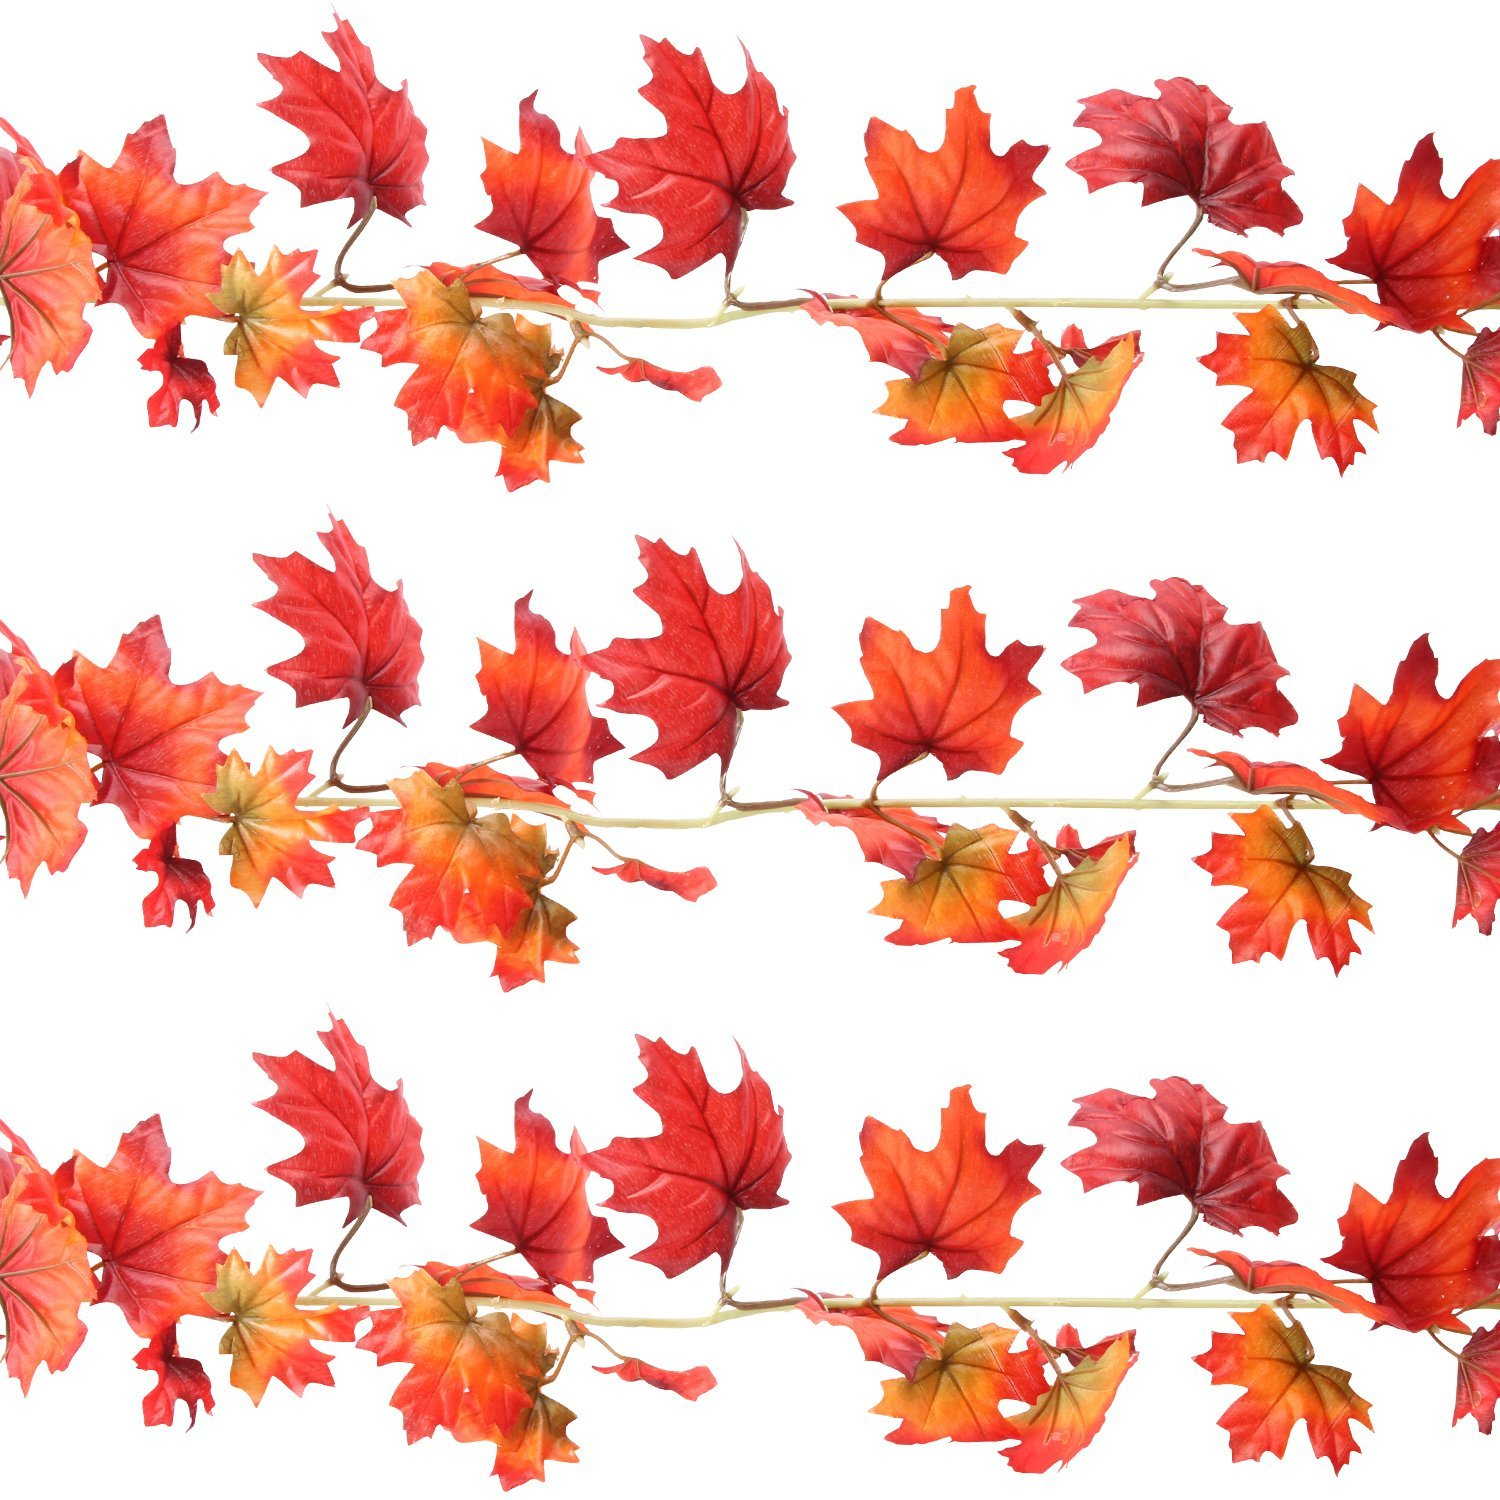 Sunshane 5.9 Feet Fall Garland Artificial Maple Leaf Garland Autumn Thanksgiving Party Room Decoration (3 Pack)